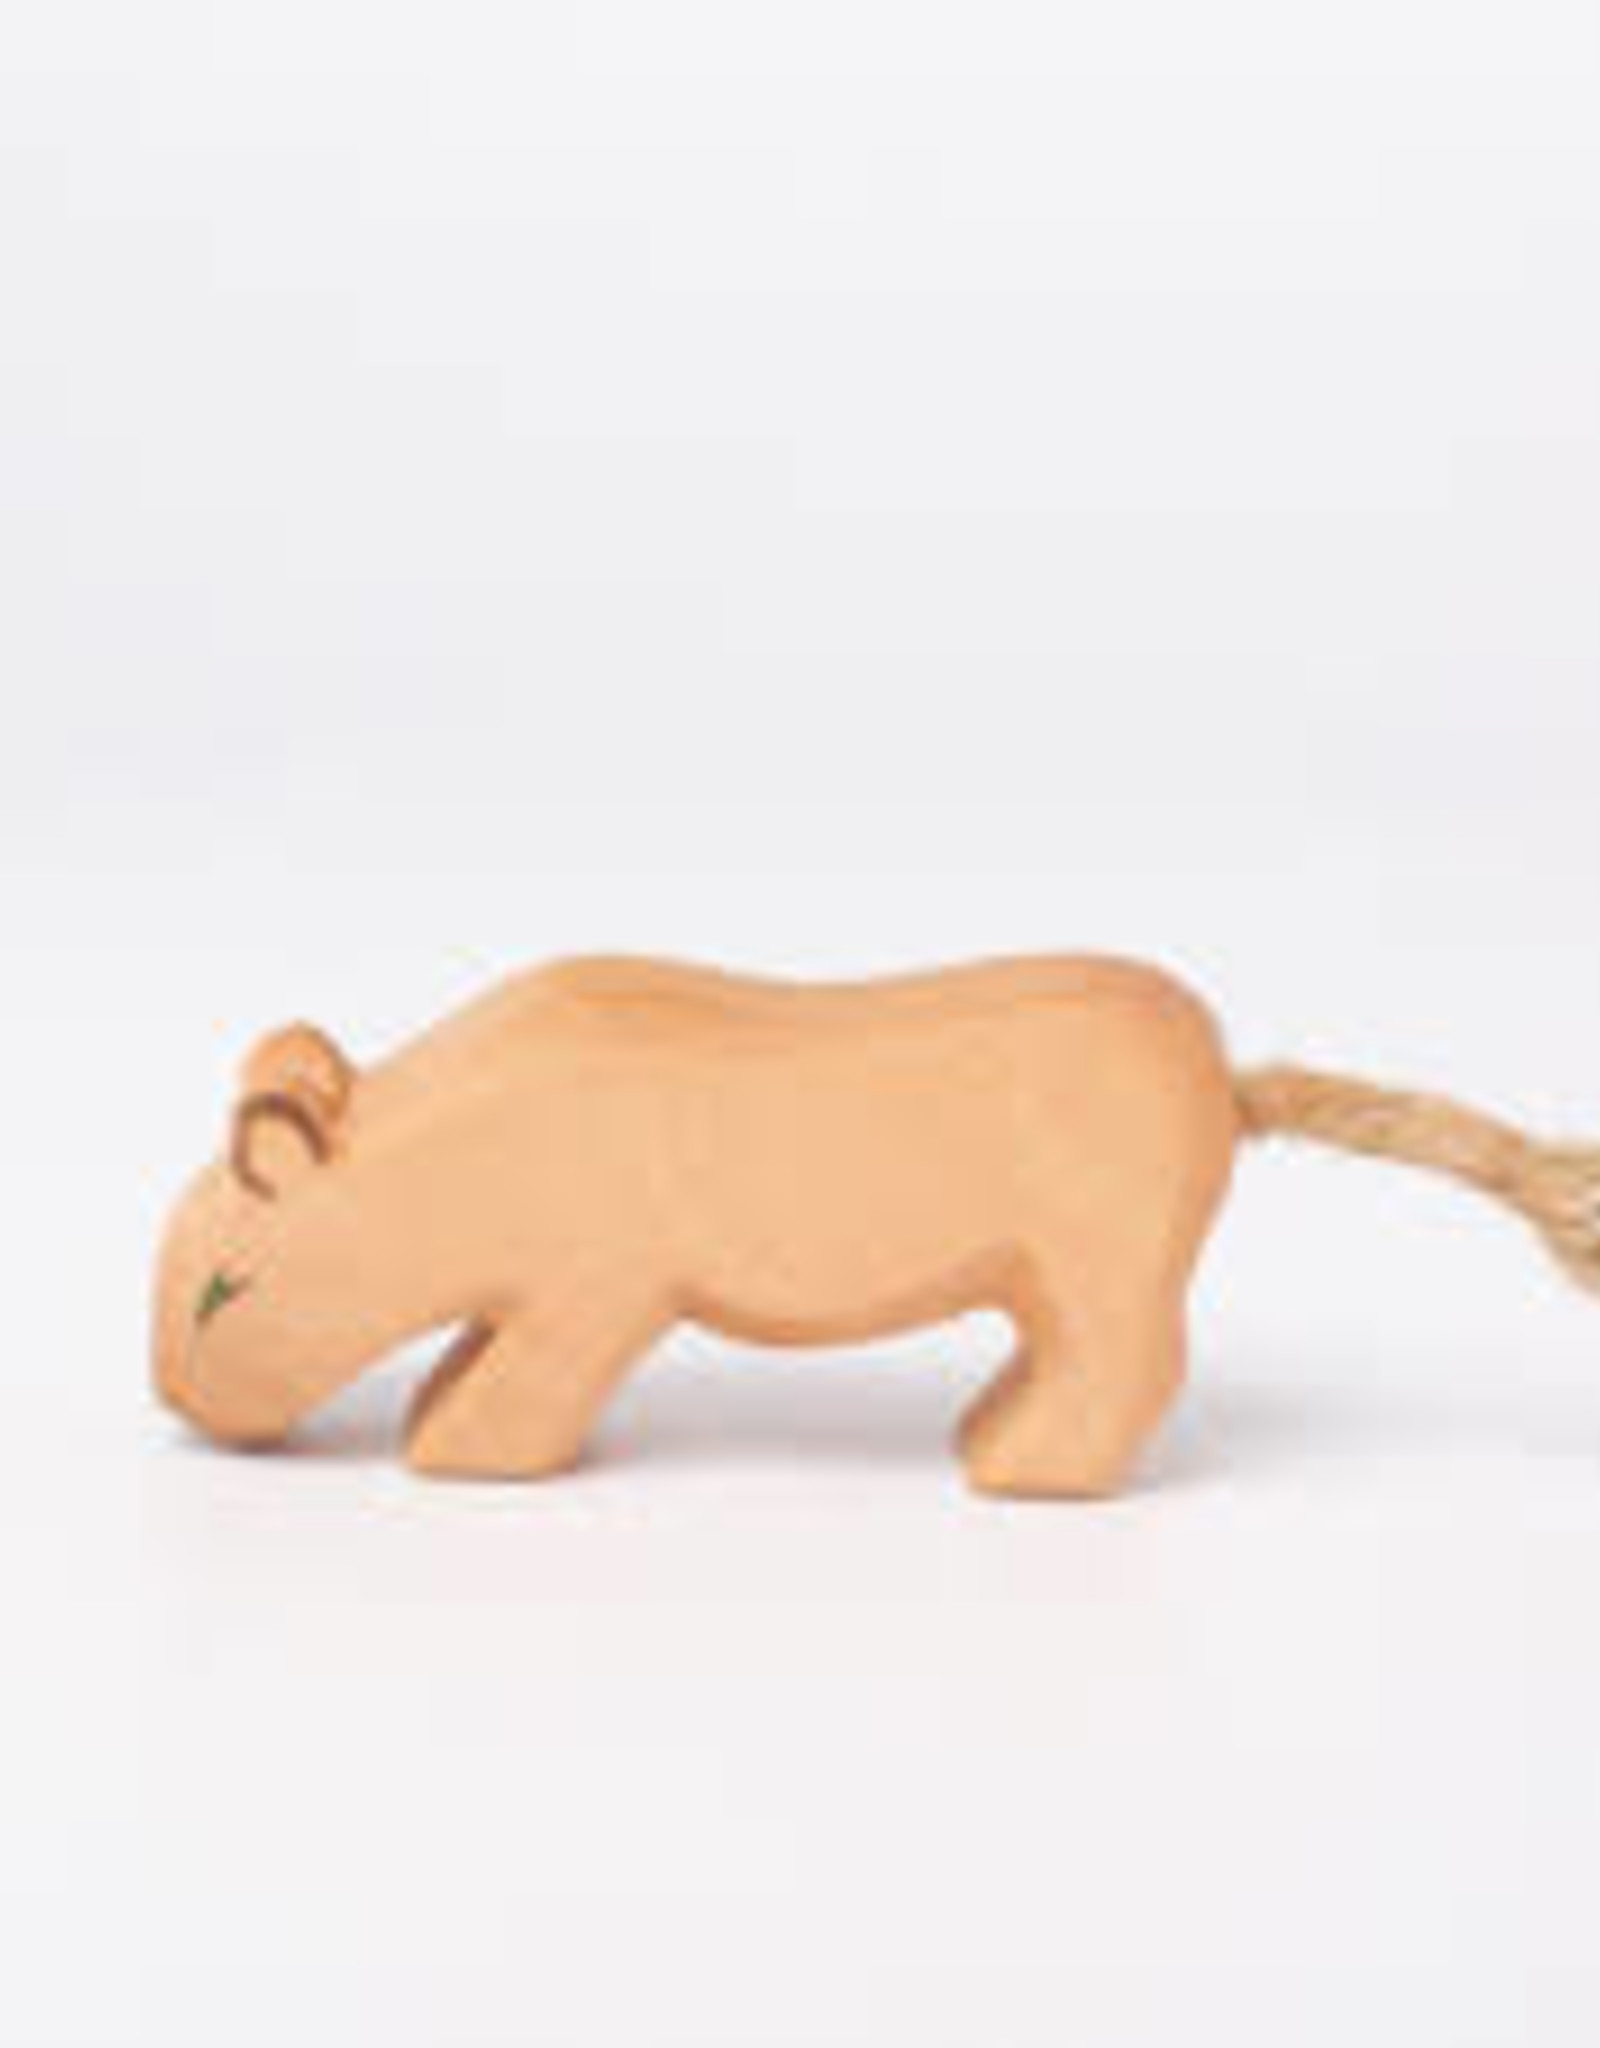 Ostheimer Lion small, head lowered